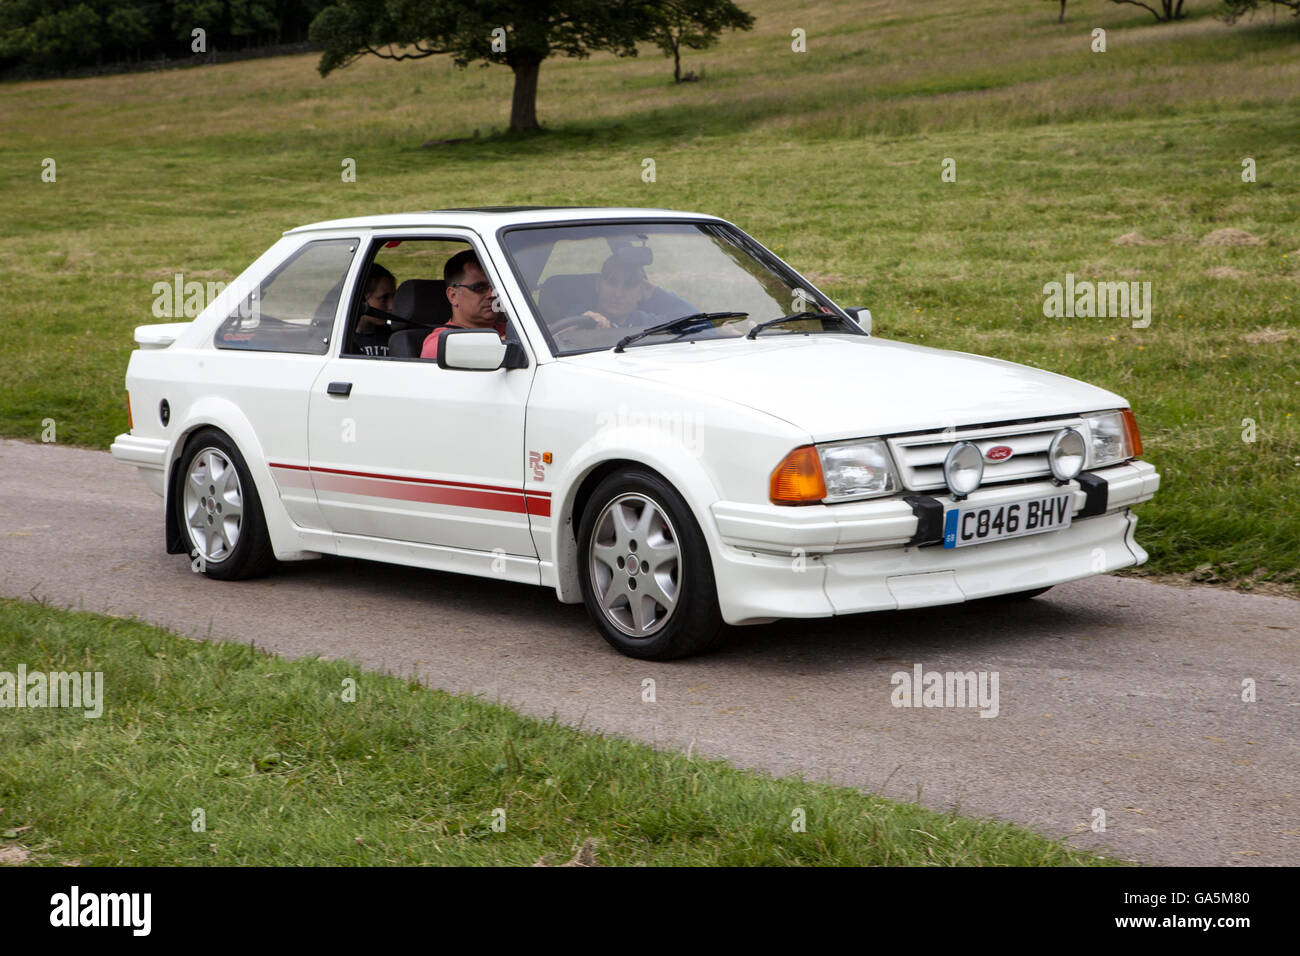 ford escort rs stock photos ford escort rs stock images. Black Bedroom Furniture Sets. Home Design Ideas